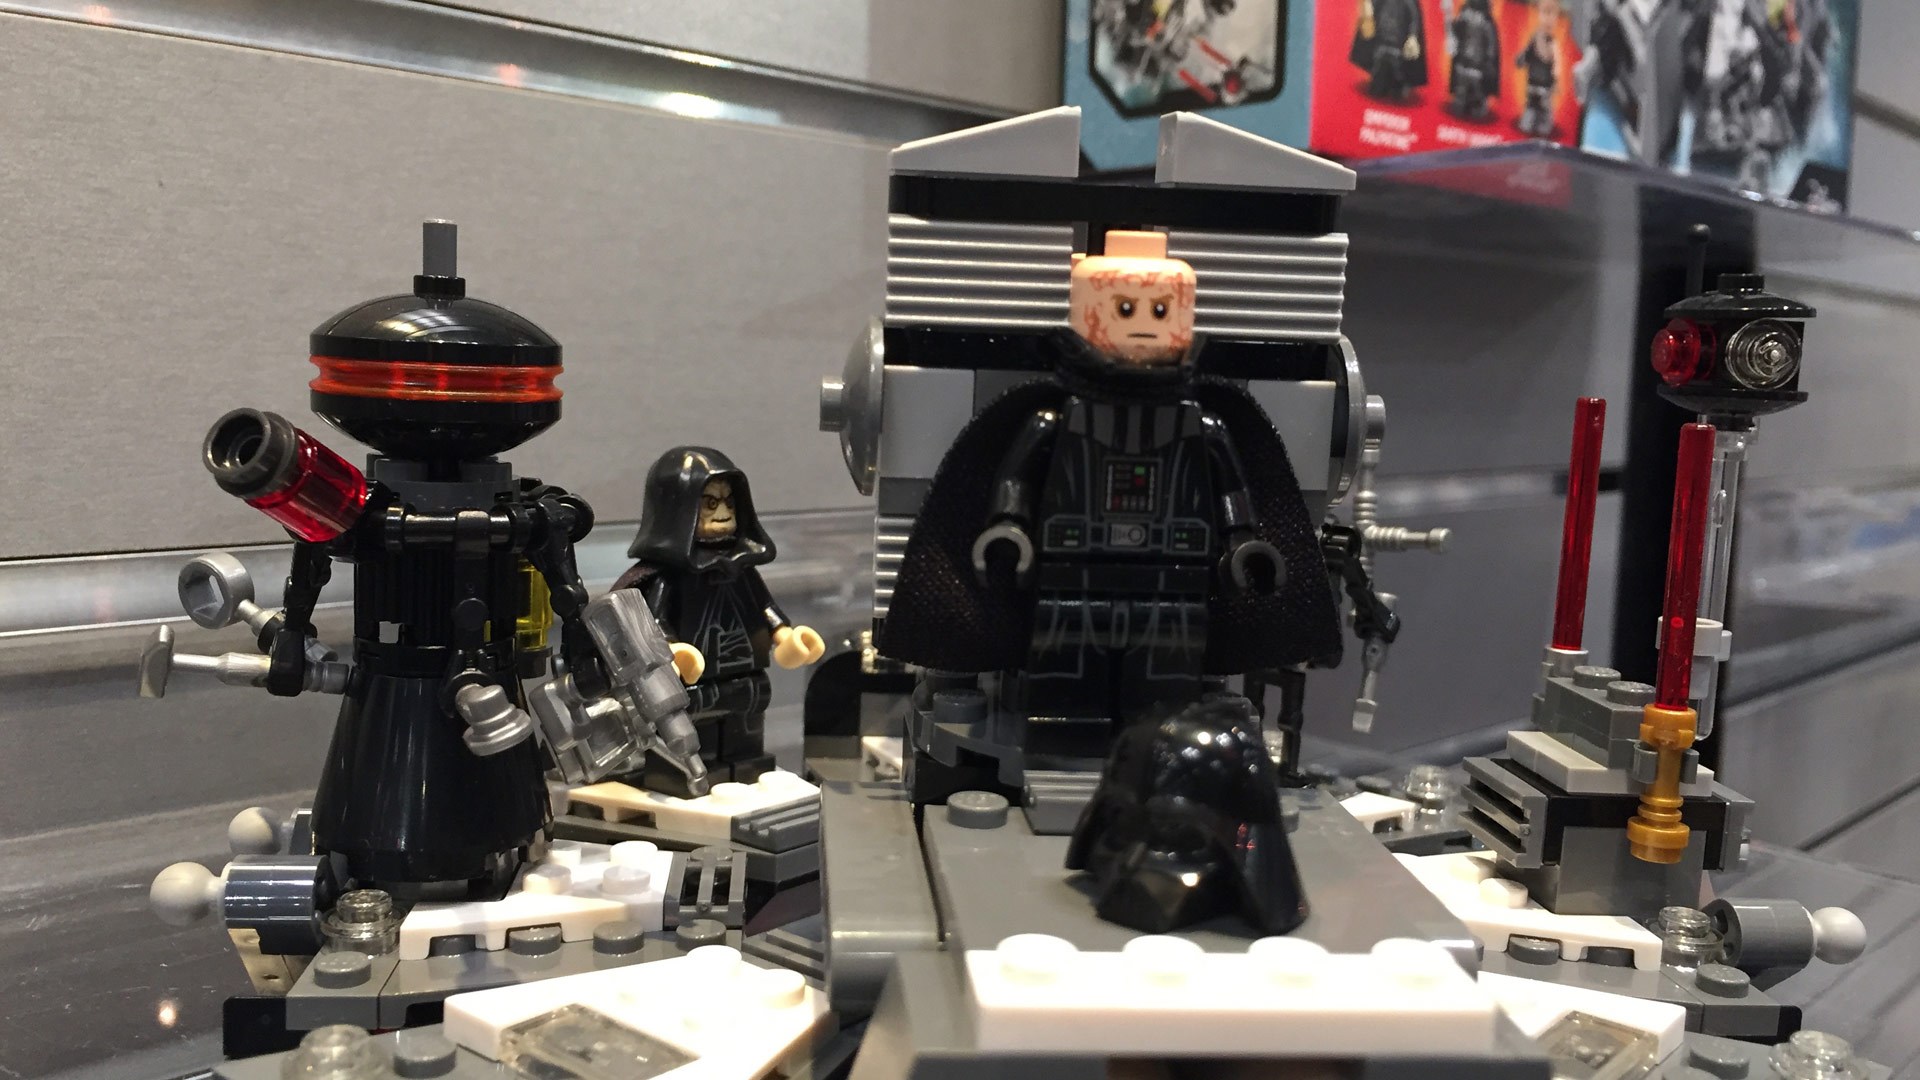 LEGO Star Wars Set 75183 Darth Vader's Transformation at Toy Fair 2017